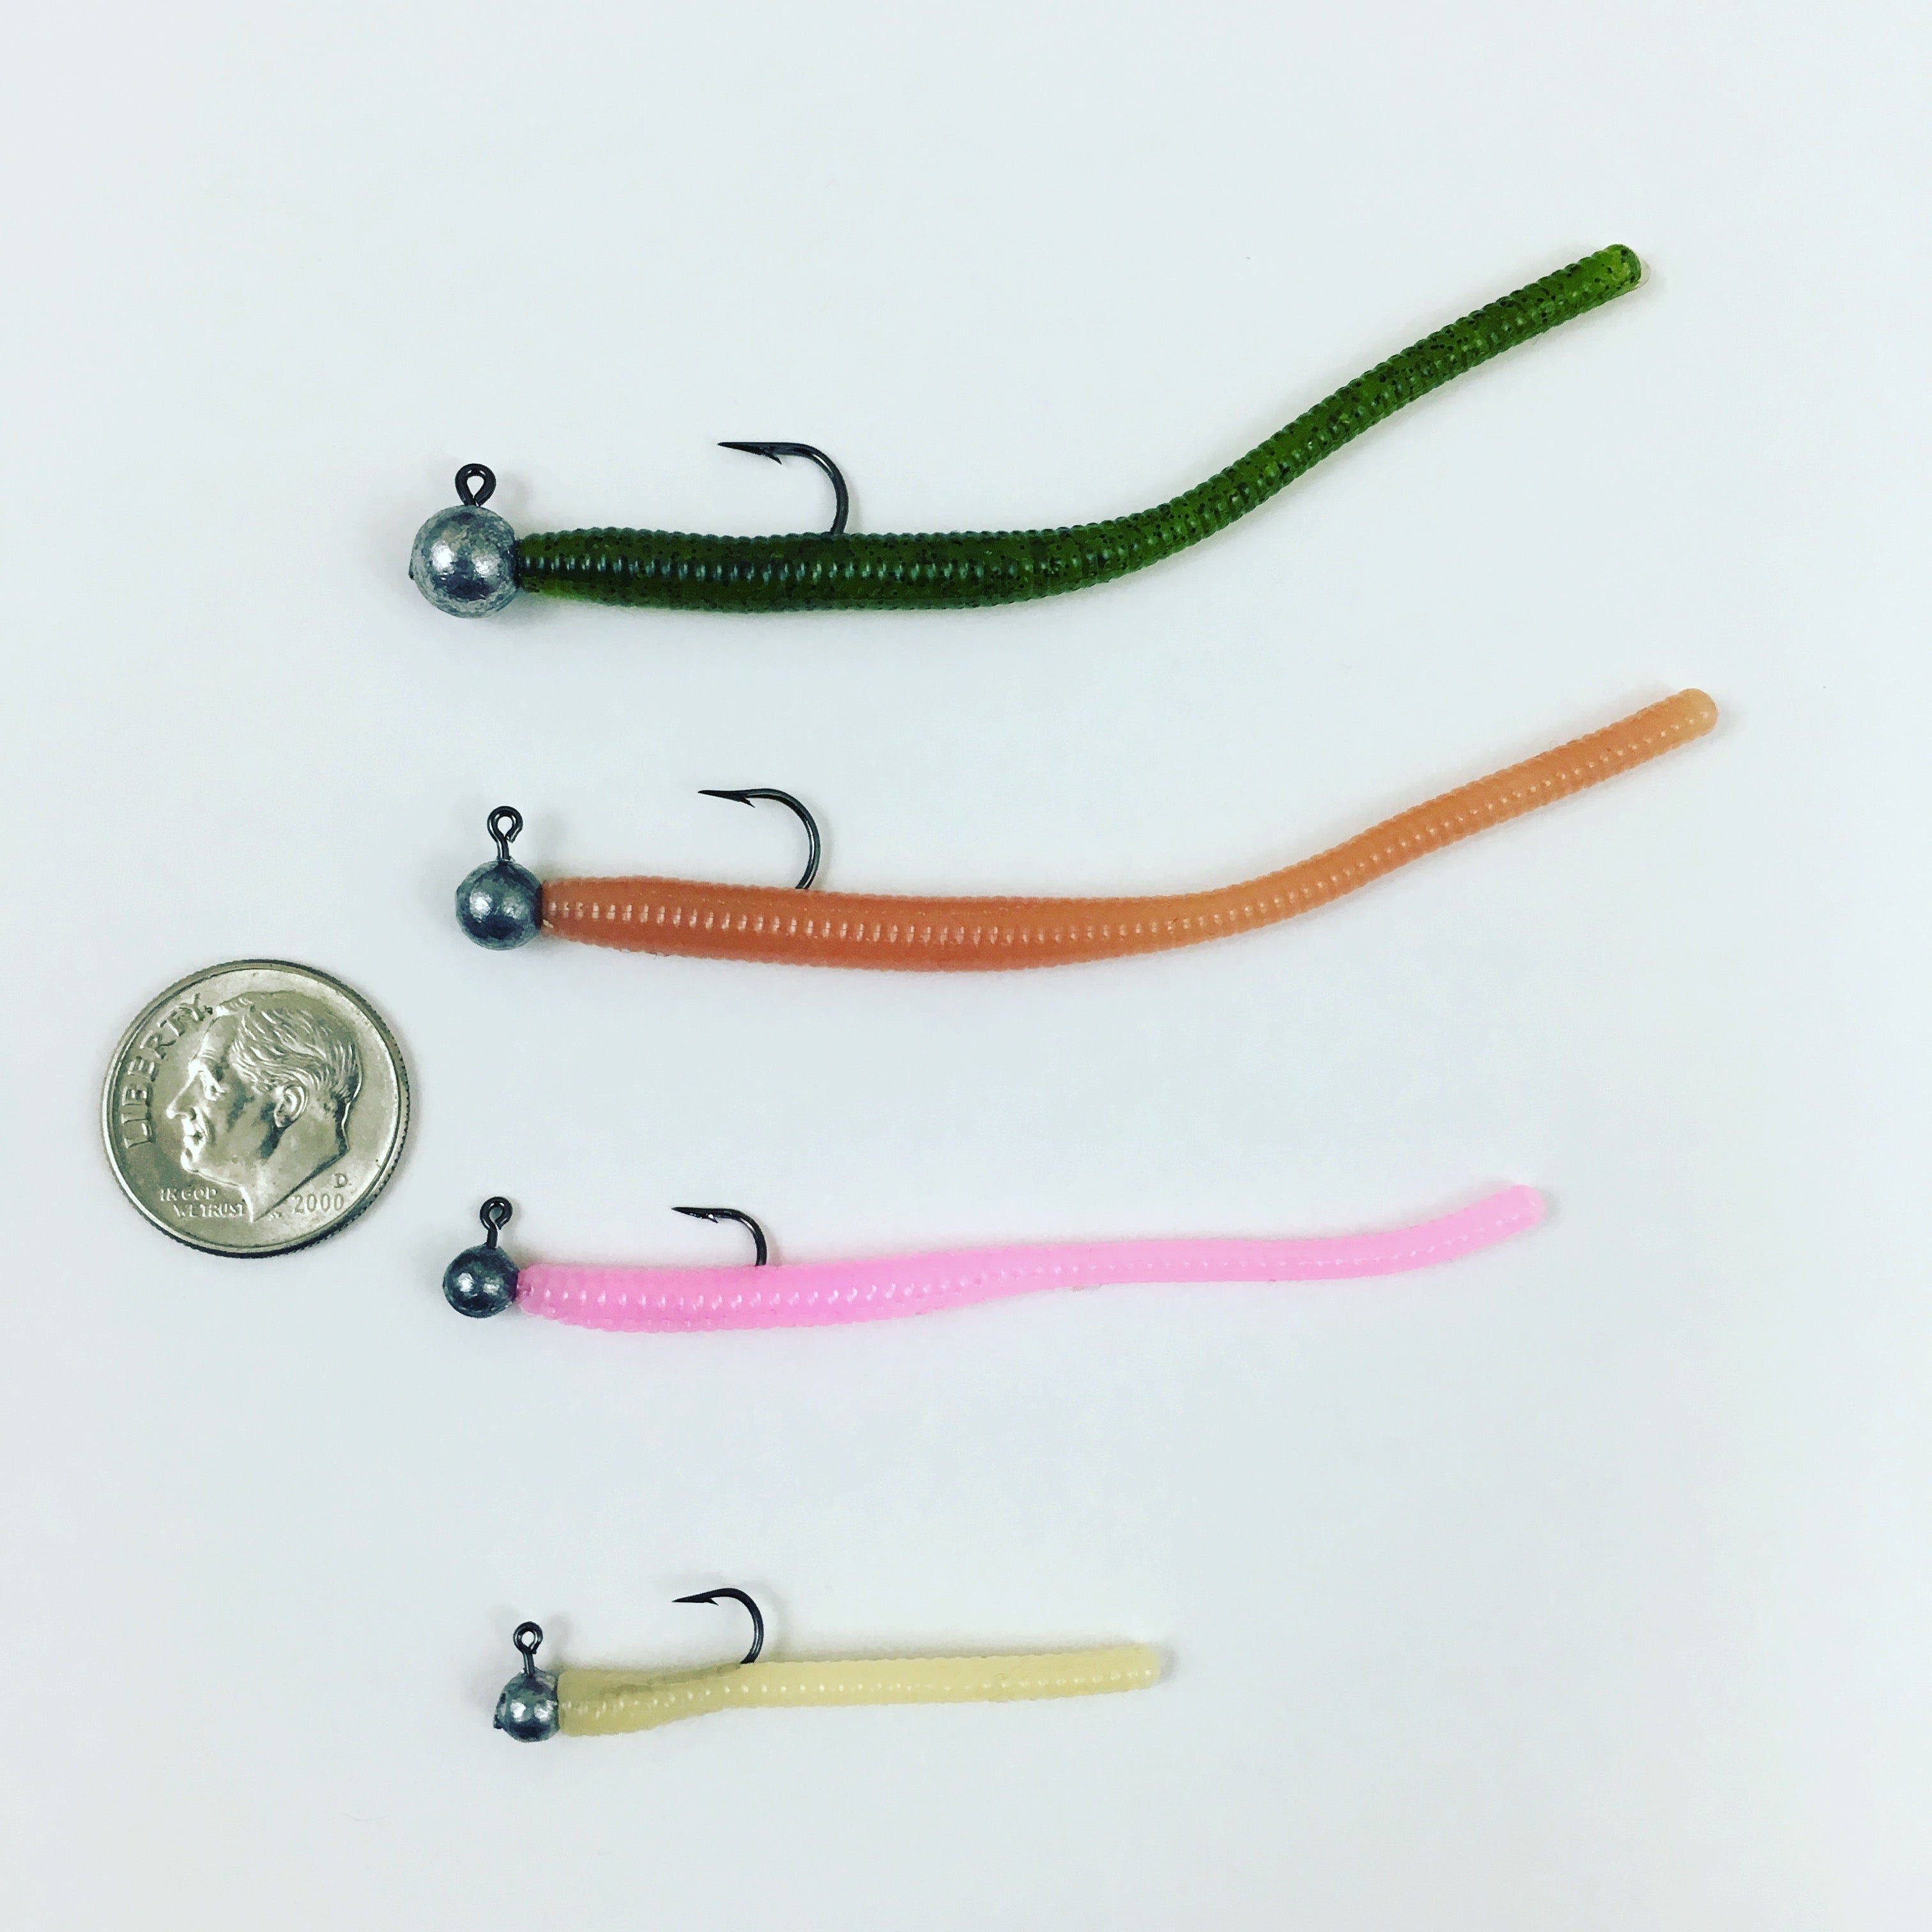 Super Floating Trout Worm: Lime Green